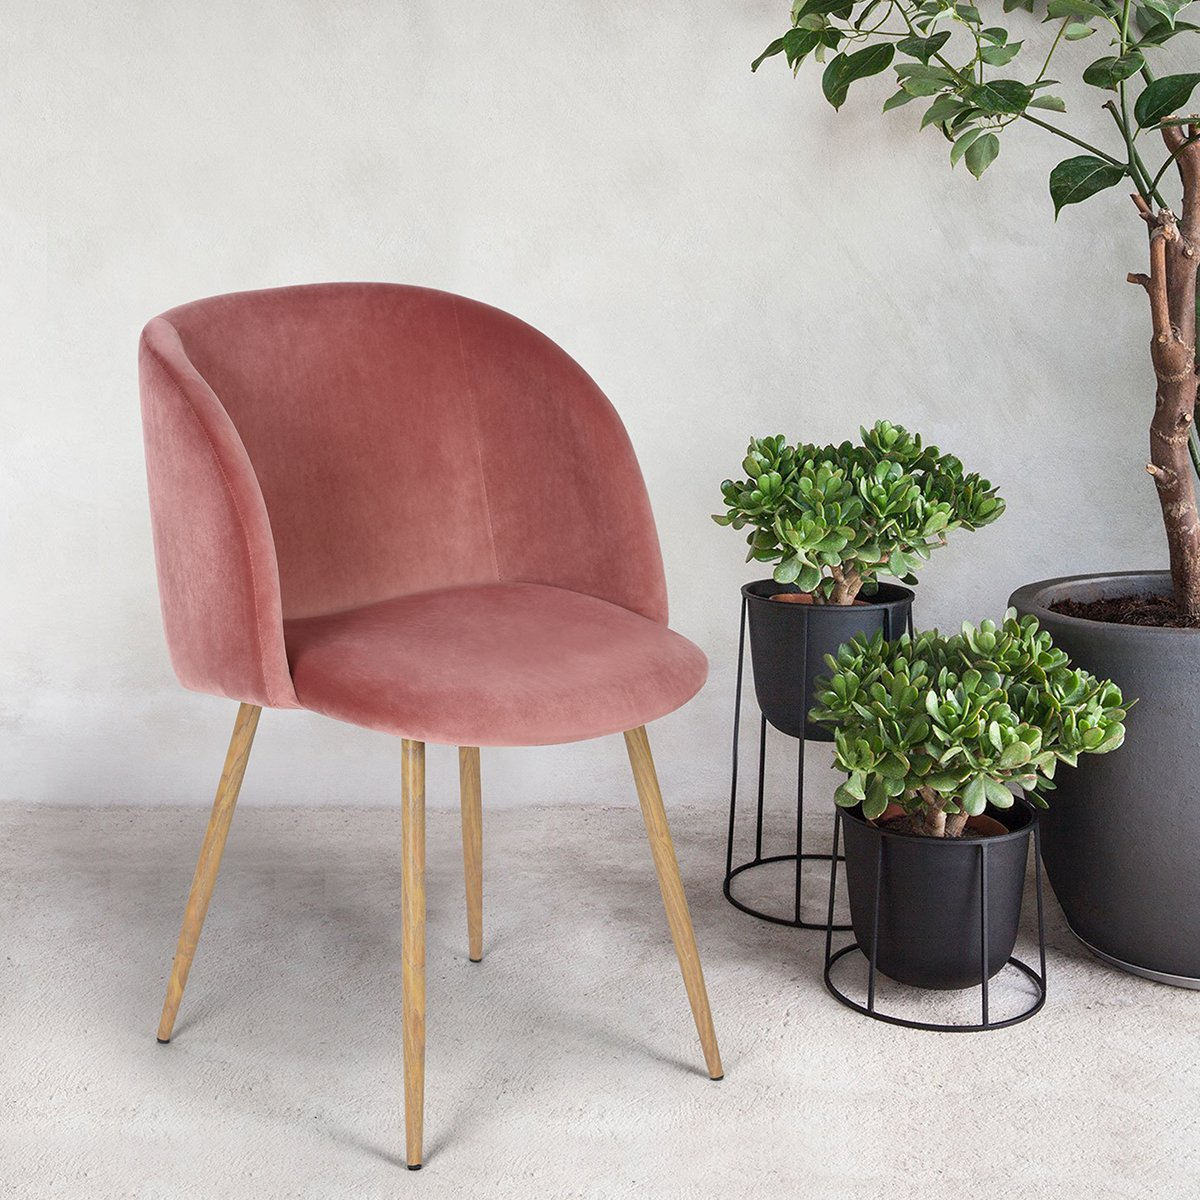 The internet is obsessed with these affordable mid-century modern velvet chairs on Amazon, and you will be too. | glitterinc.com | @glitterinc - Everyone is Obsessed With These Affordable Velvet Chairs on Amazon by North Carolina style blogger Glitter, Inc.